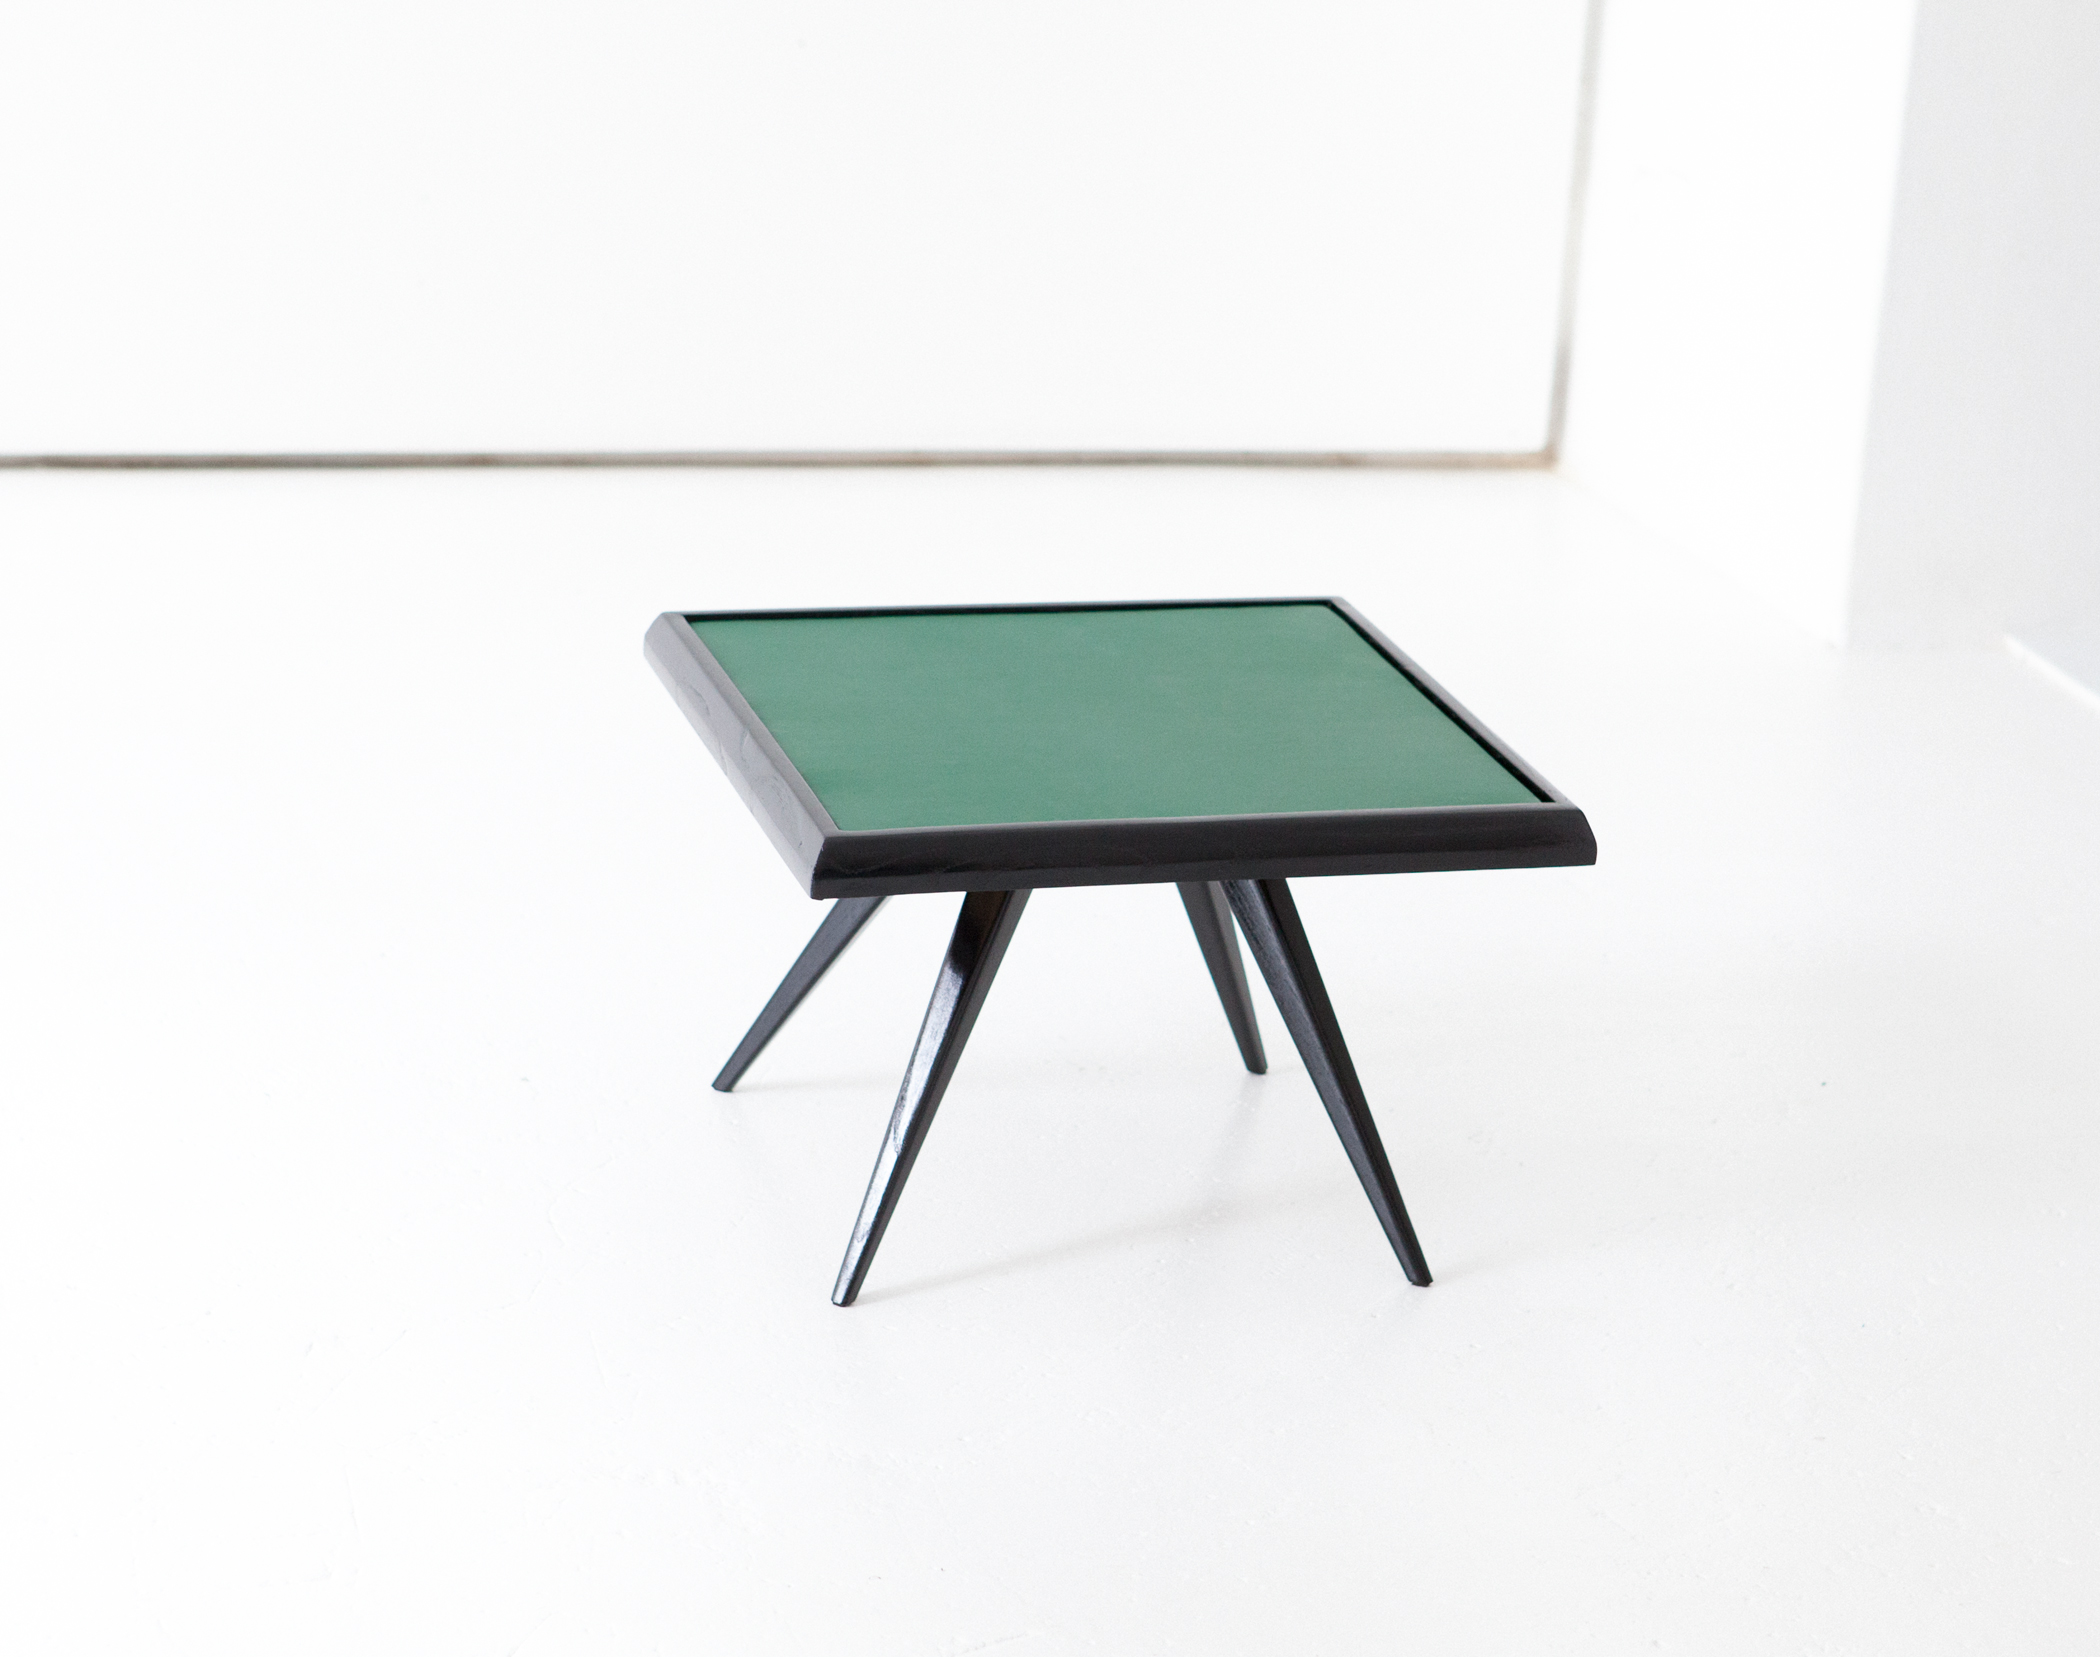 table-75.8